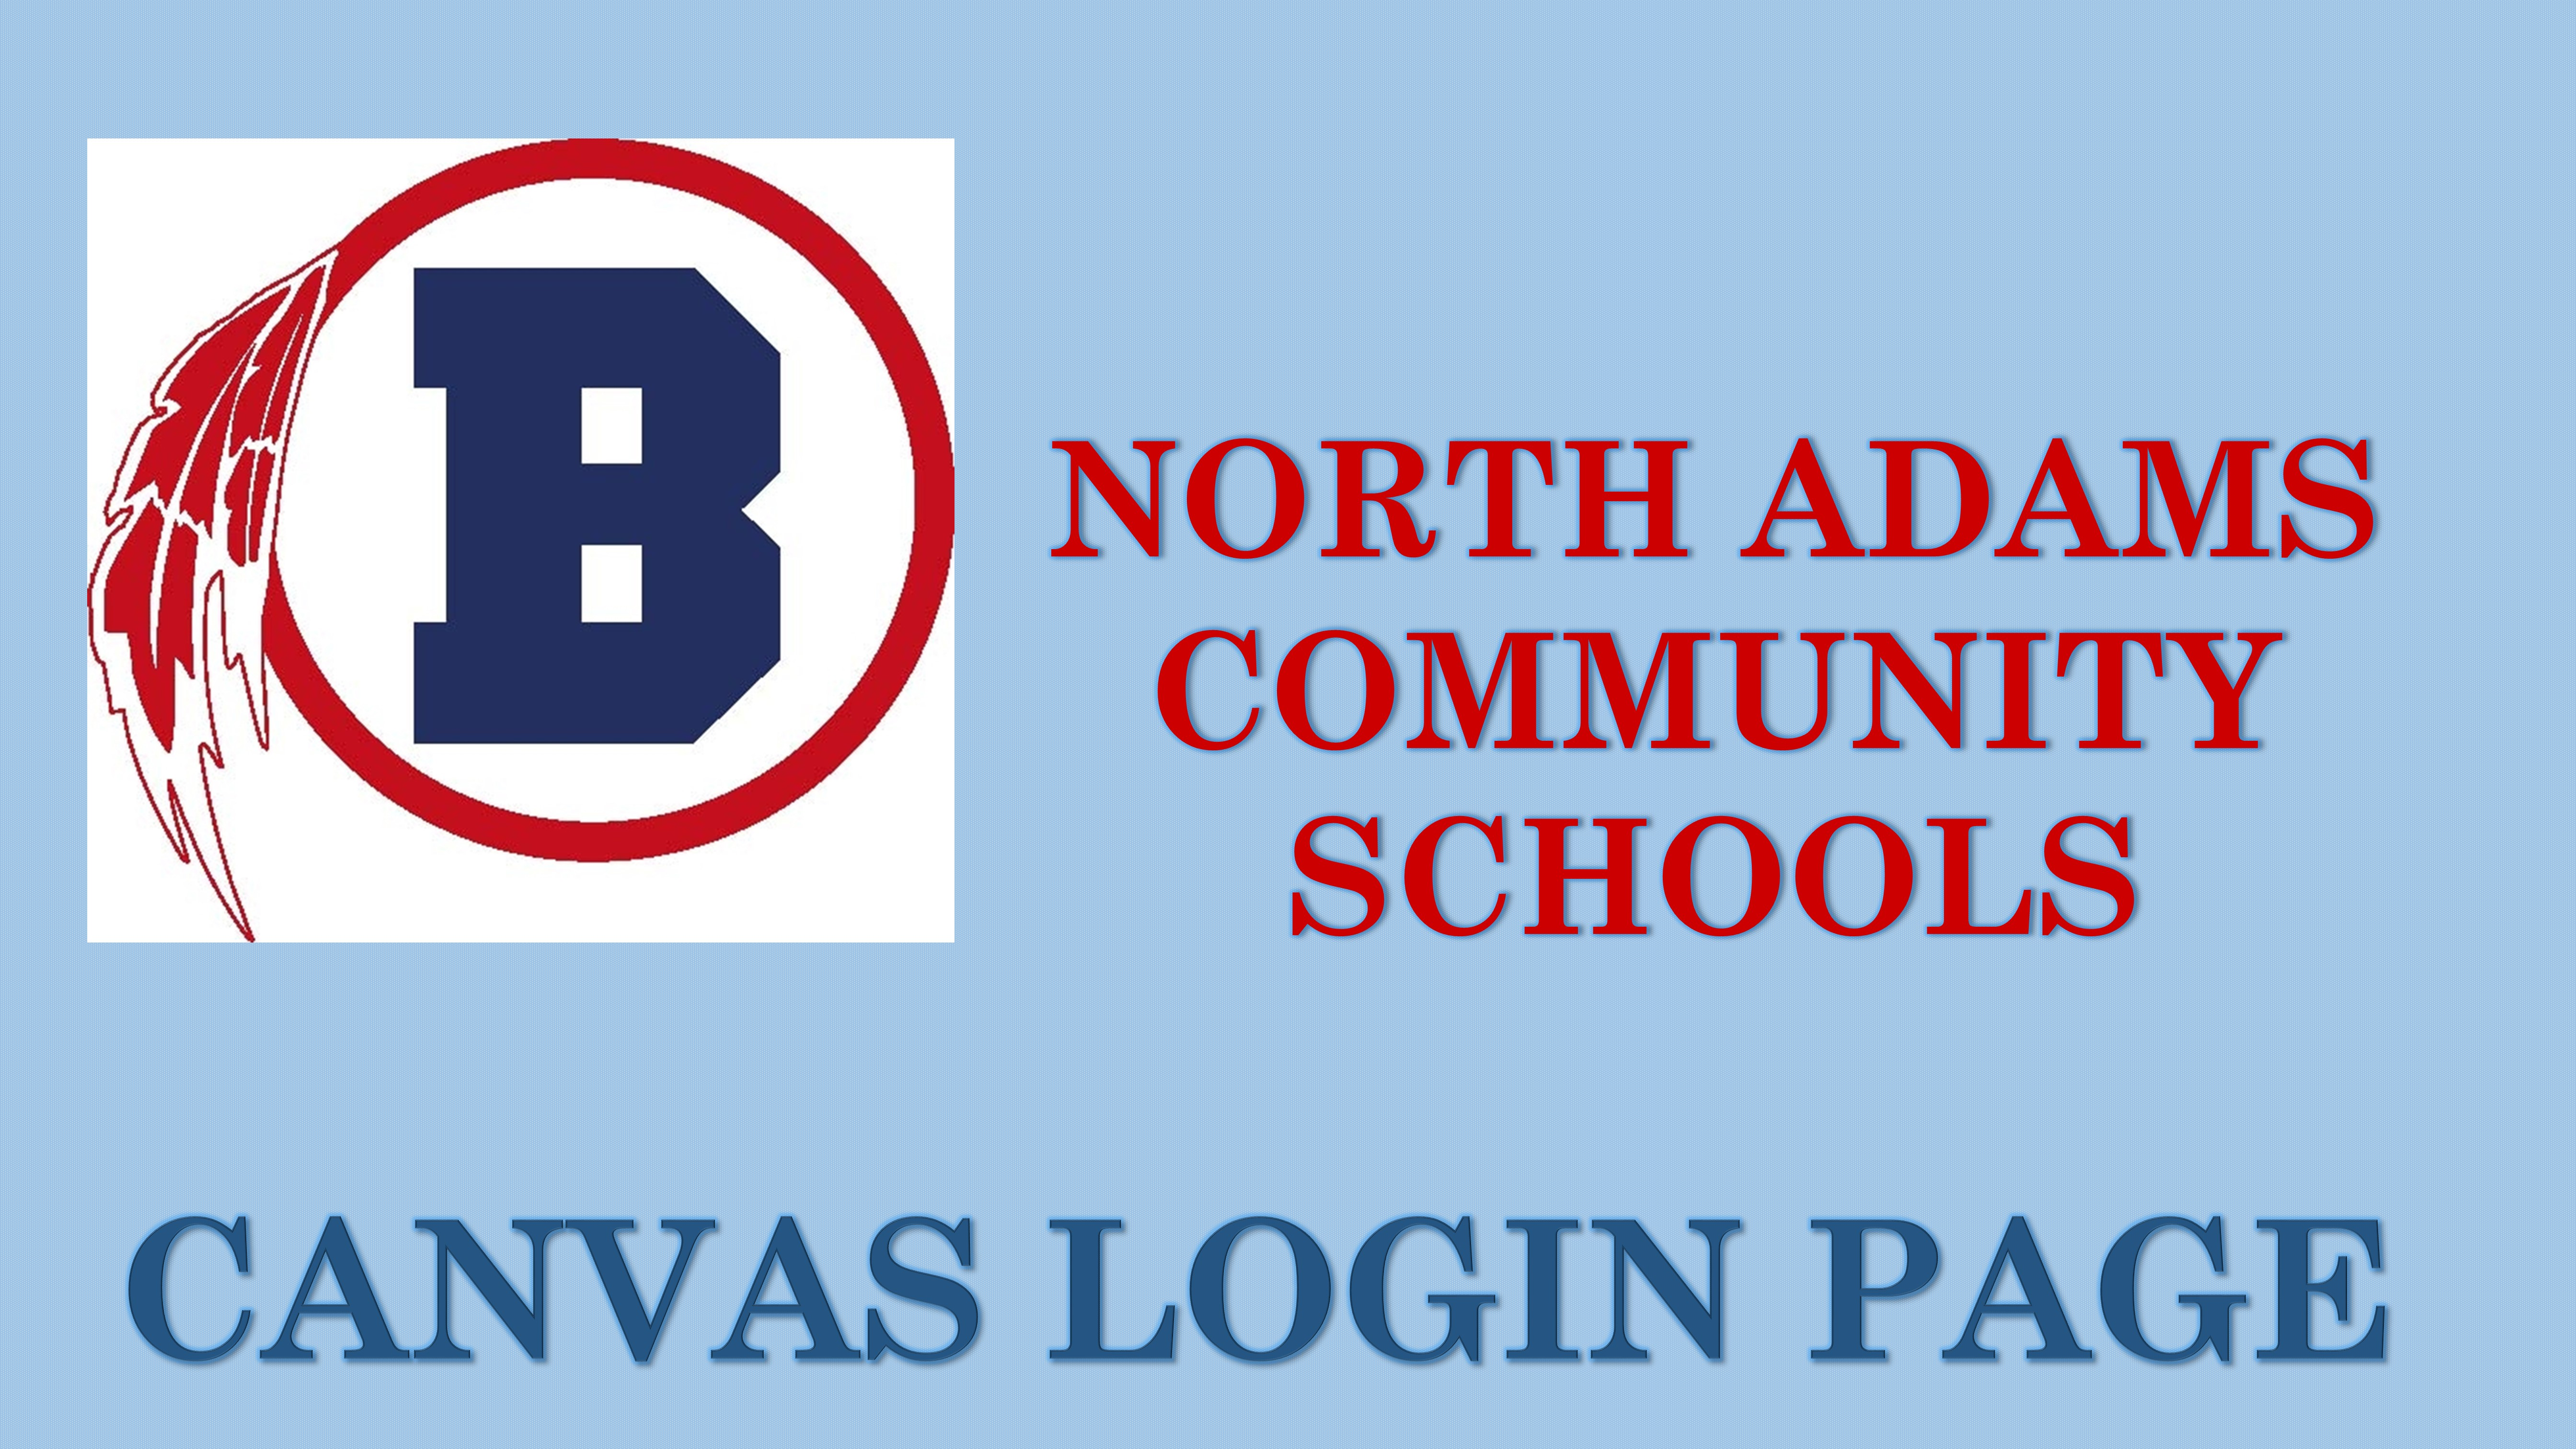 North Adams Community Schools